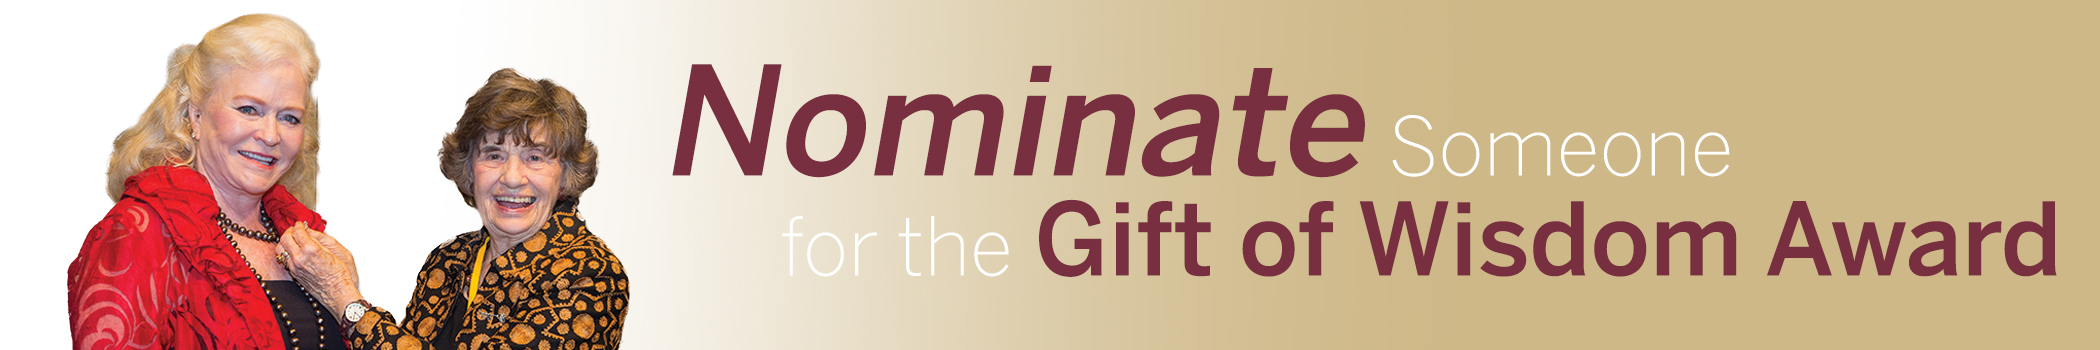 Nominate Someone for the Gift of Wisdom Award